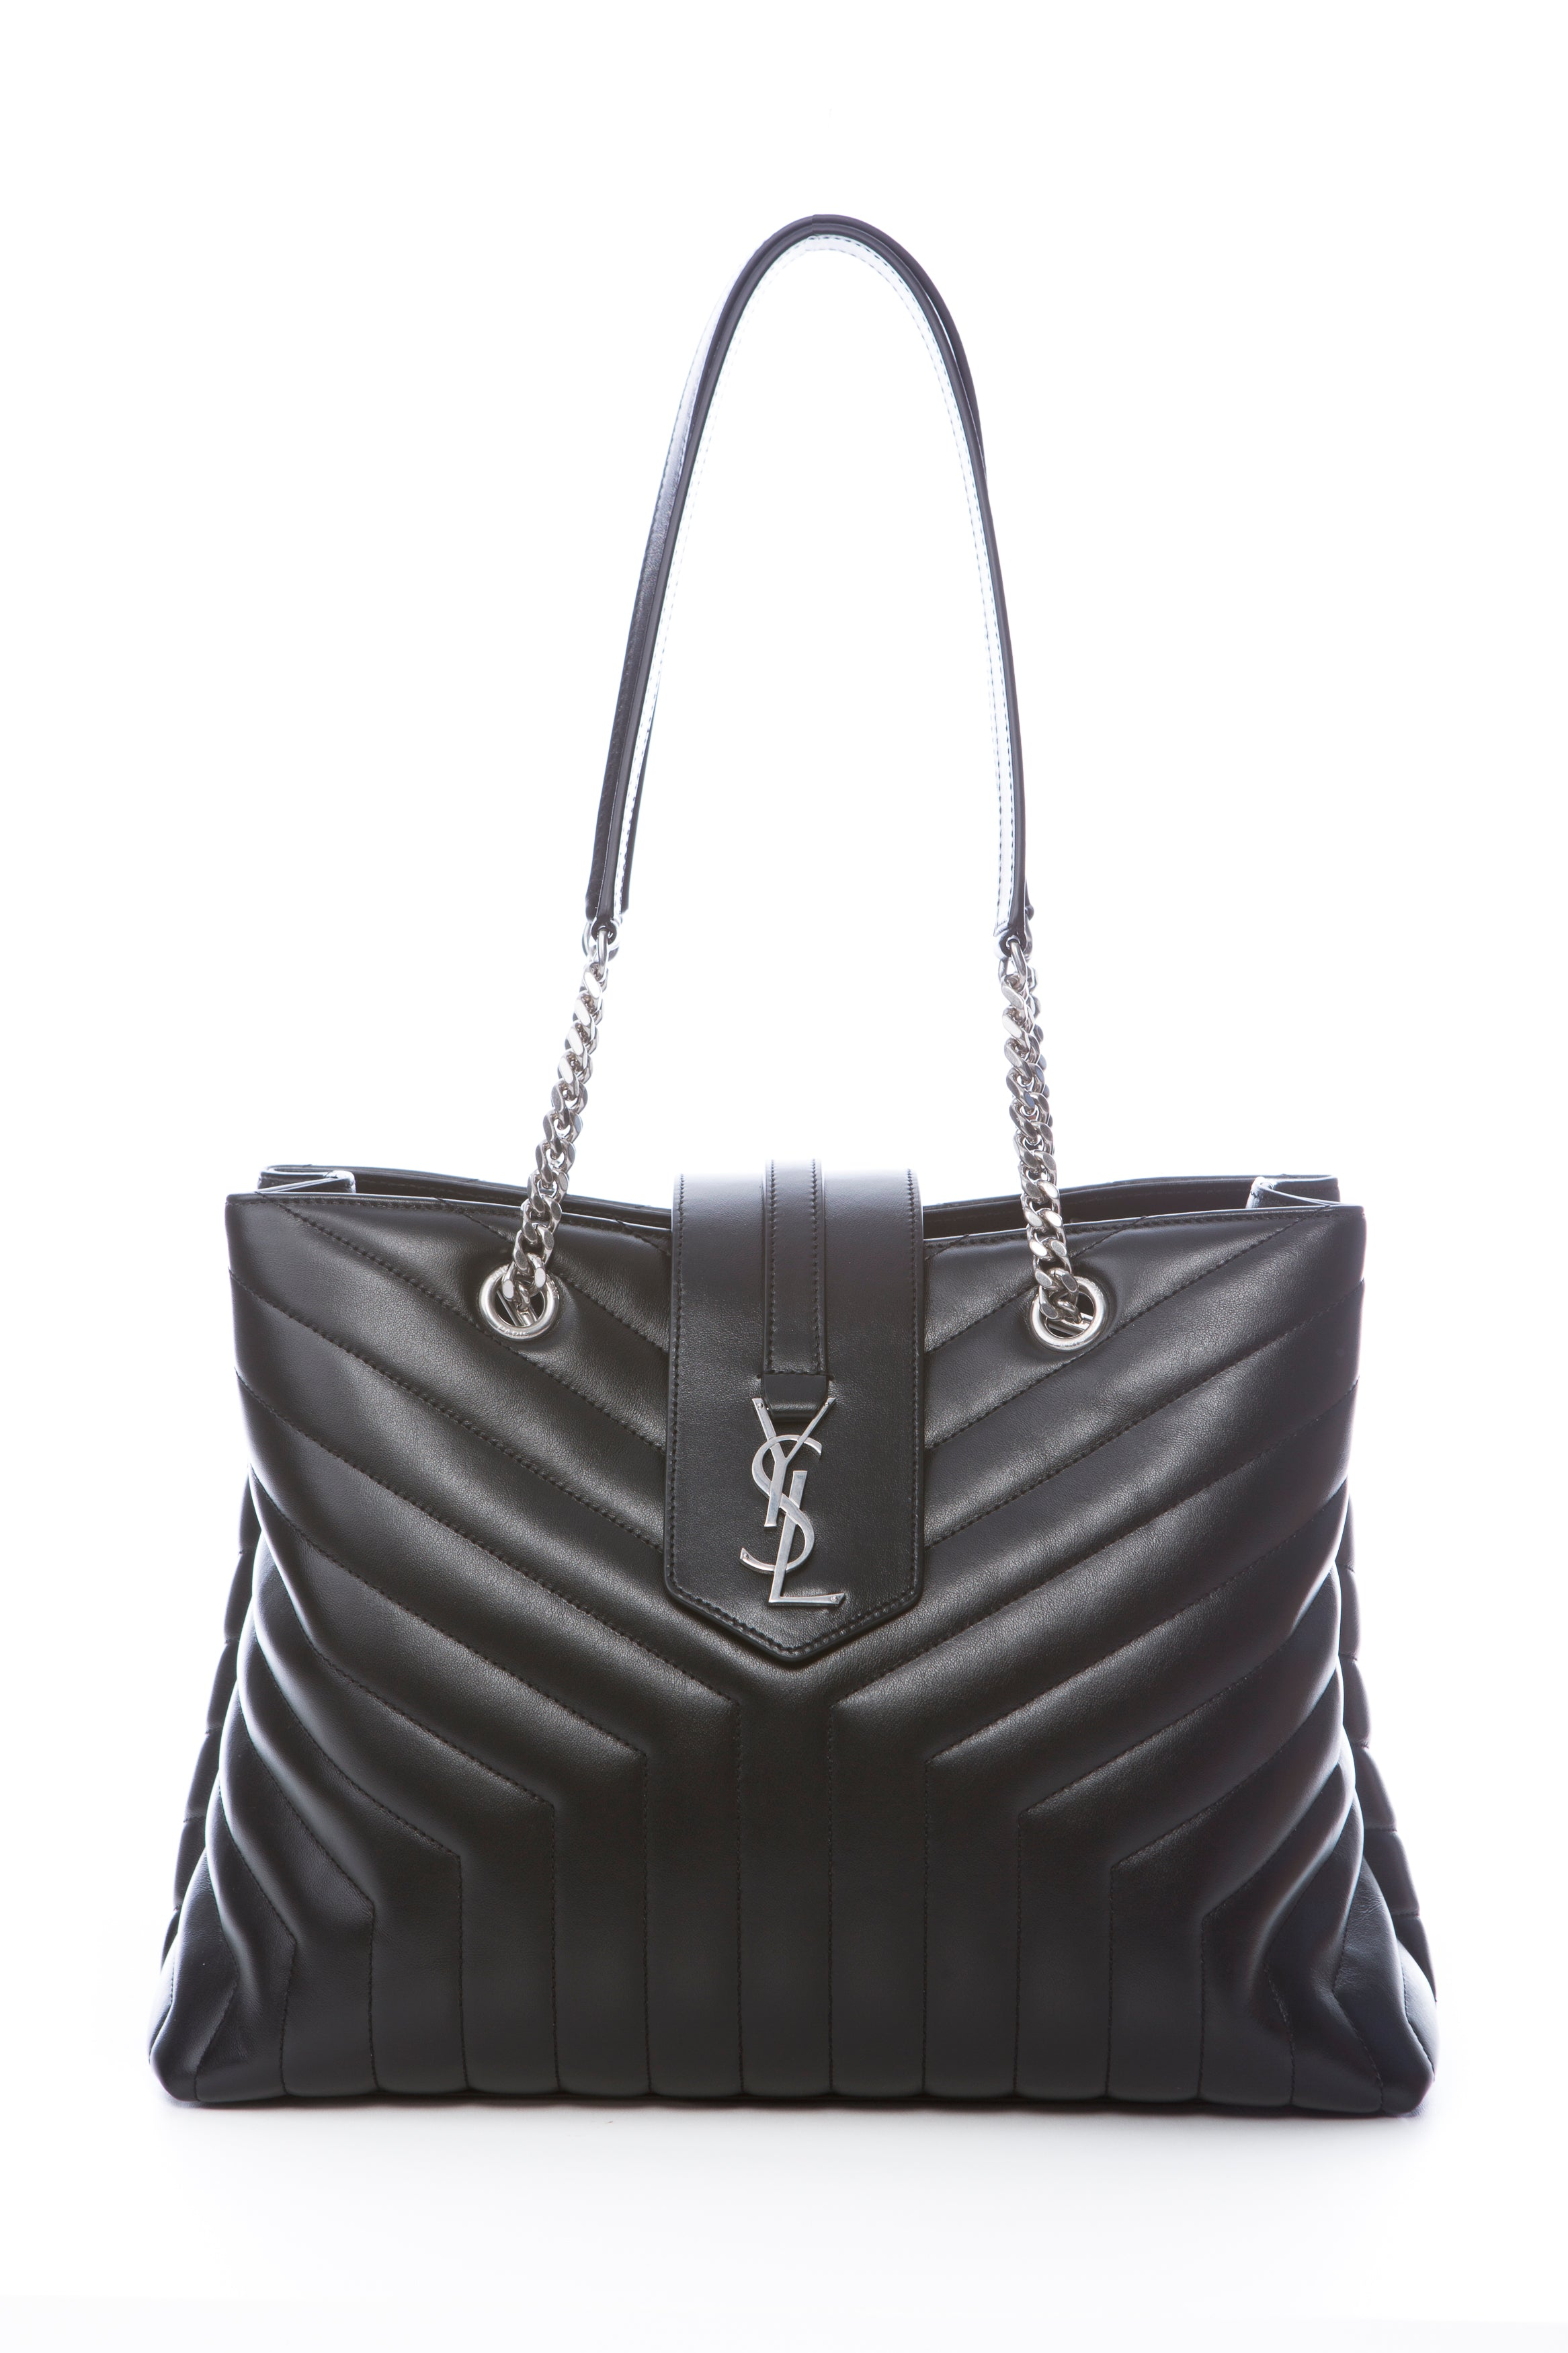 11edf5ac1 SAINT LAURENT LARGE LOULOU SHOPPING BAG IN BLACK – THE STYLE SET